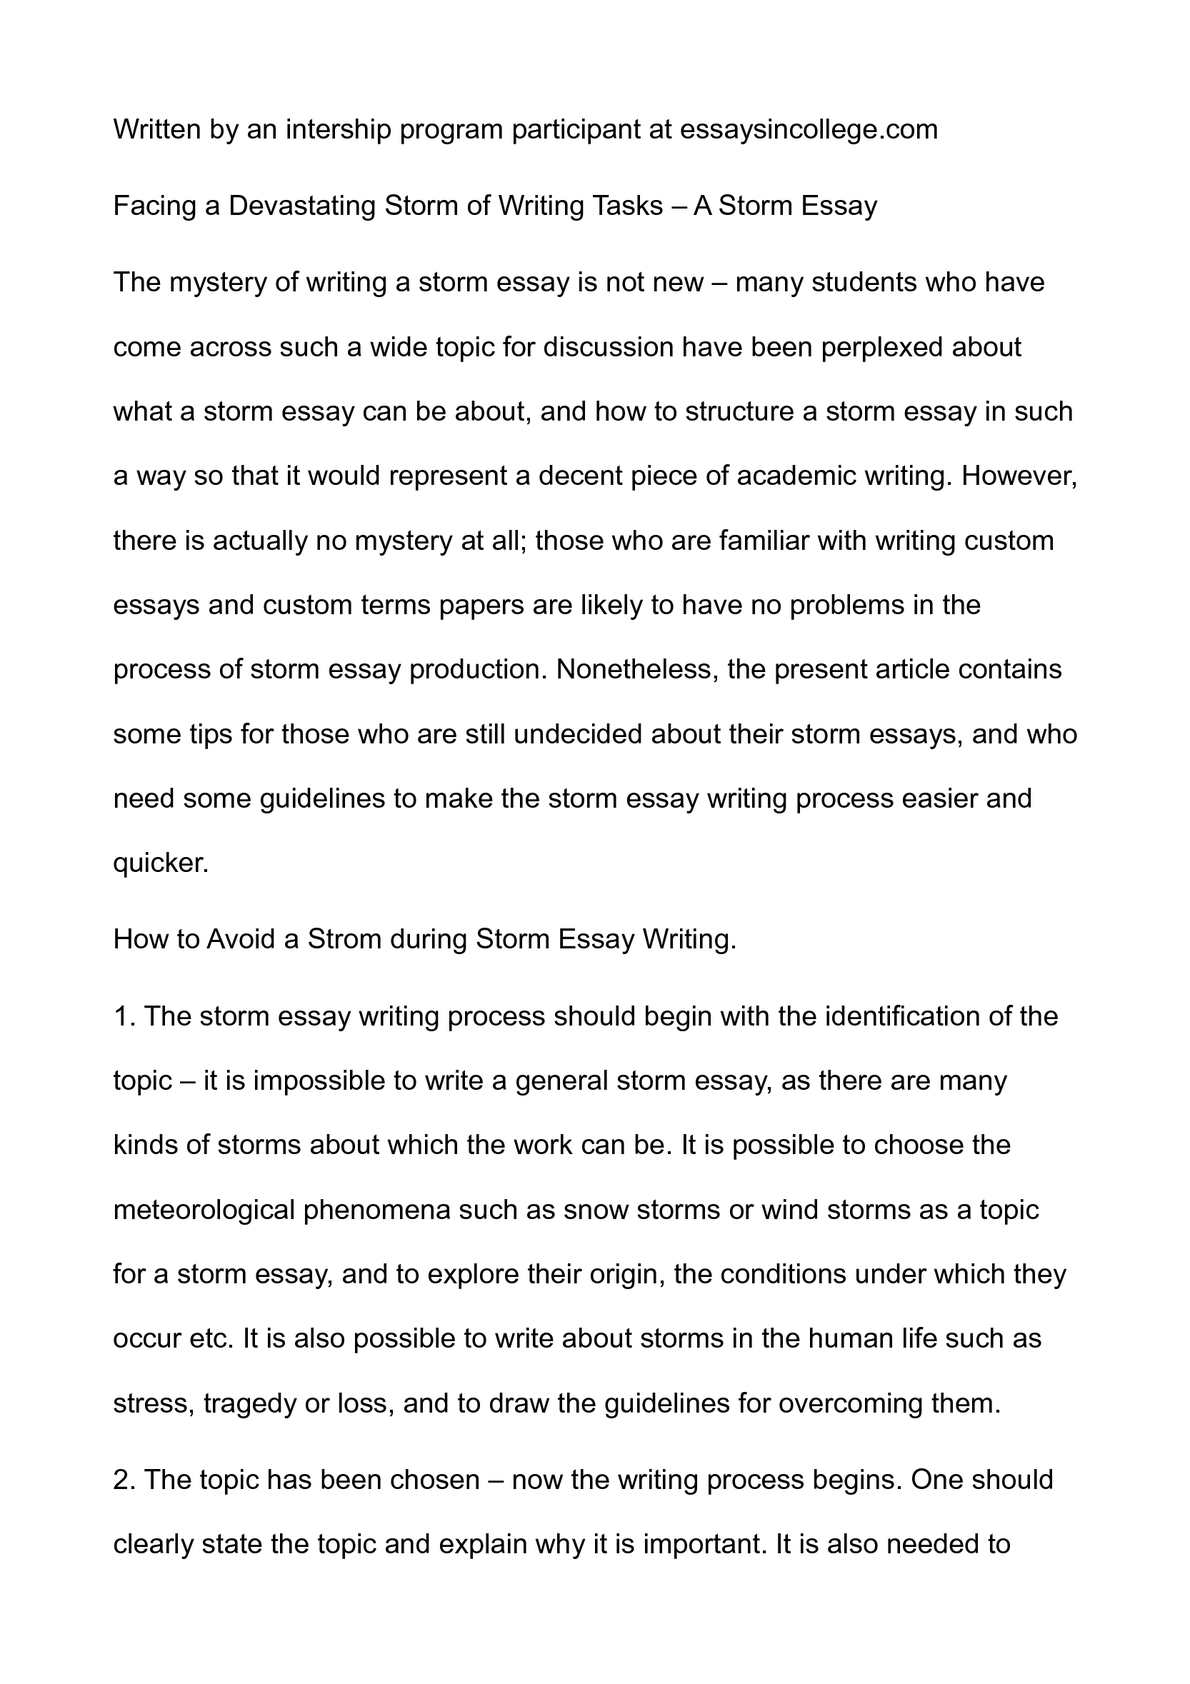 facing a devastating storm of writing tasks a storm essay